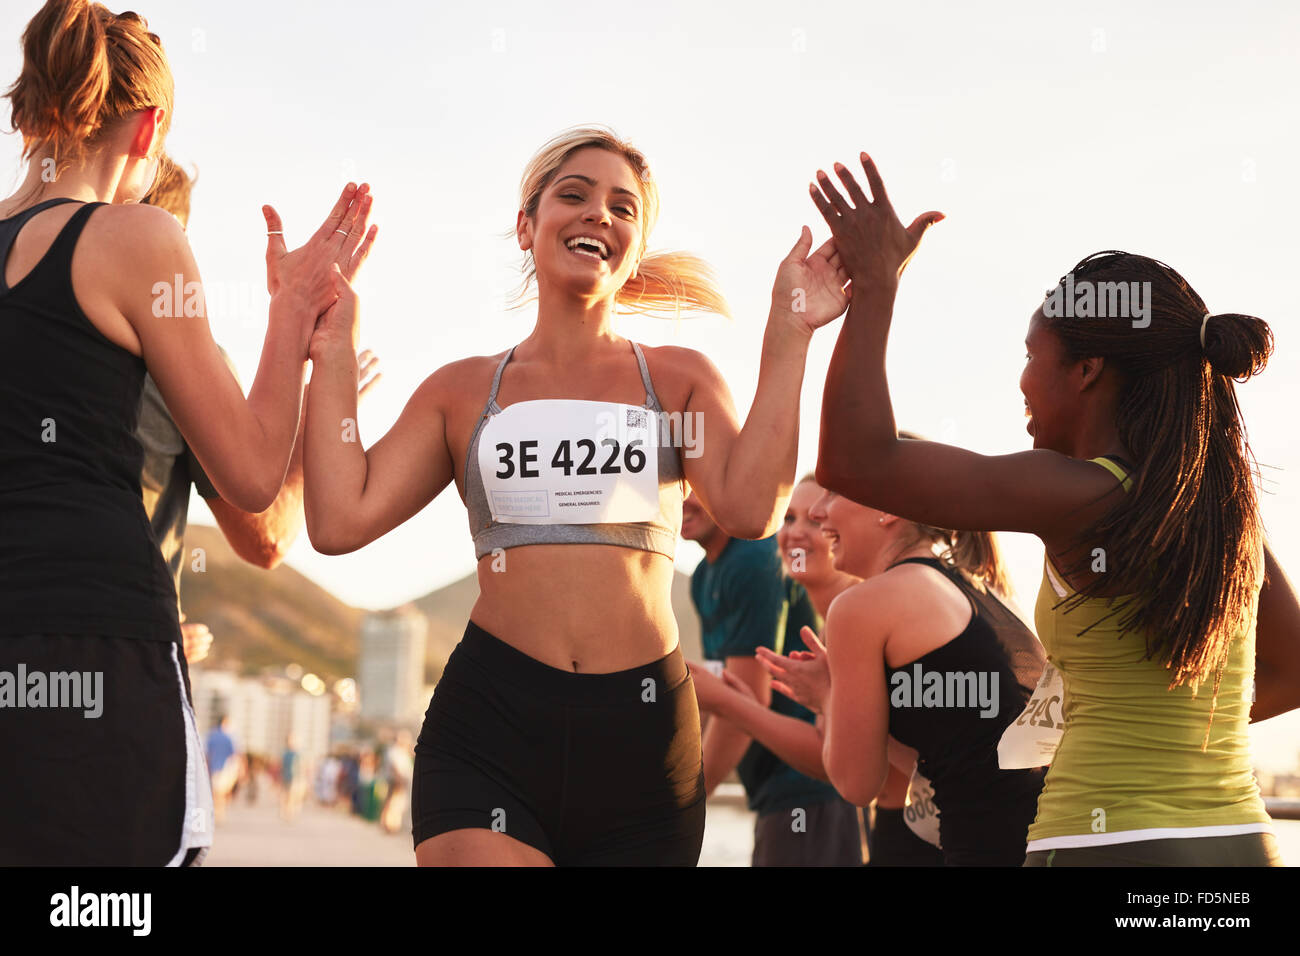 Multi ethnic group of young adults cheering and high fiving a female athlete crossing finish line. Sportswoman giving - Stock Image